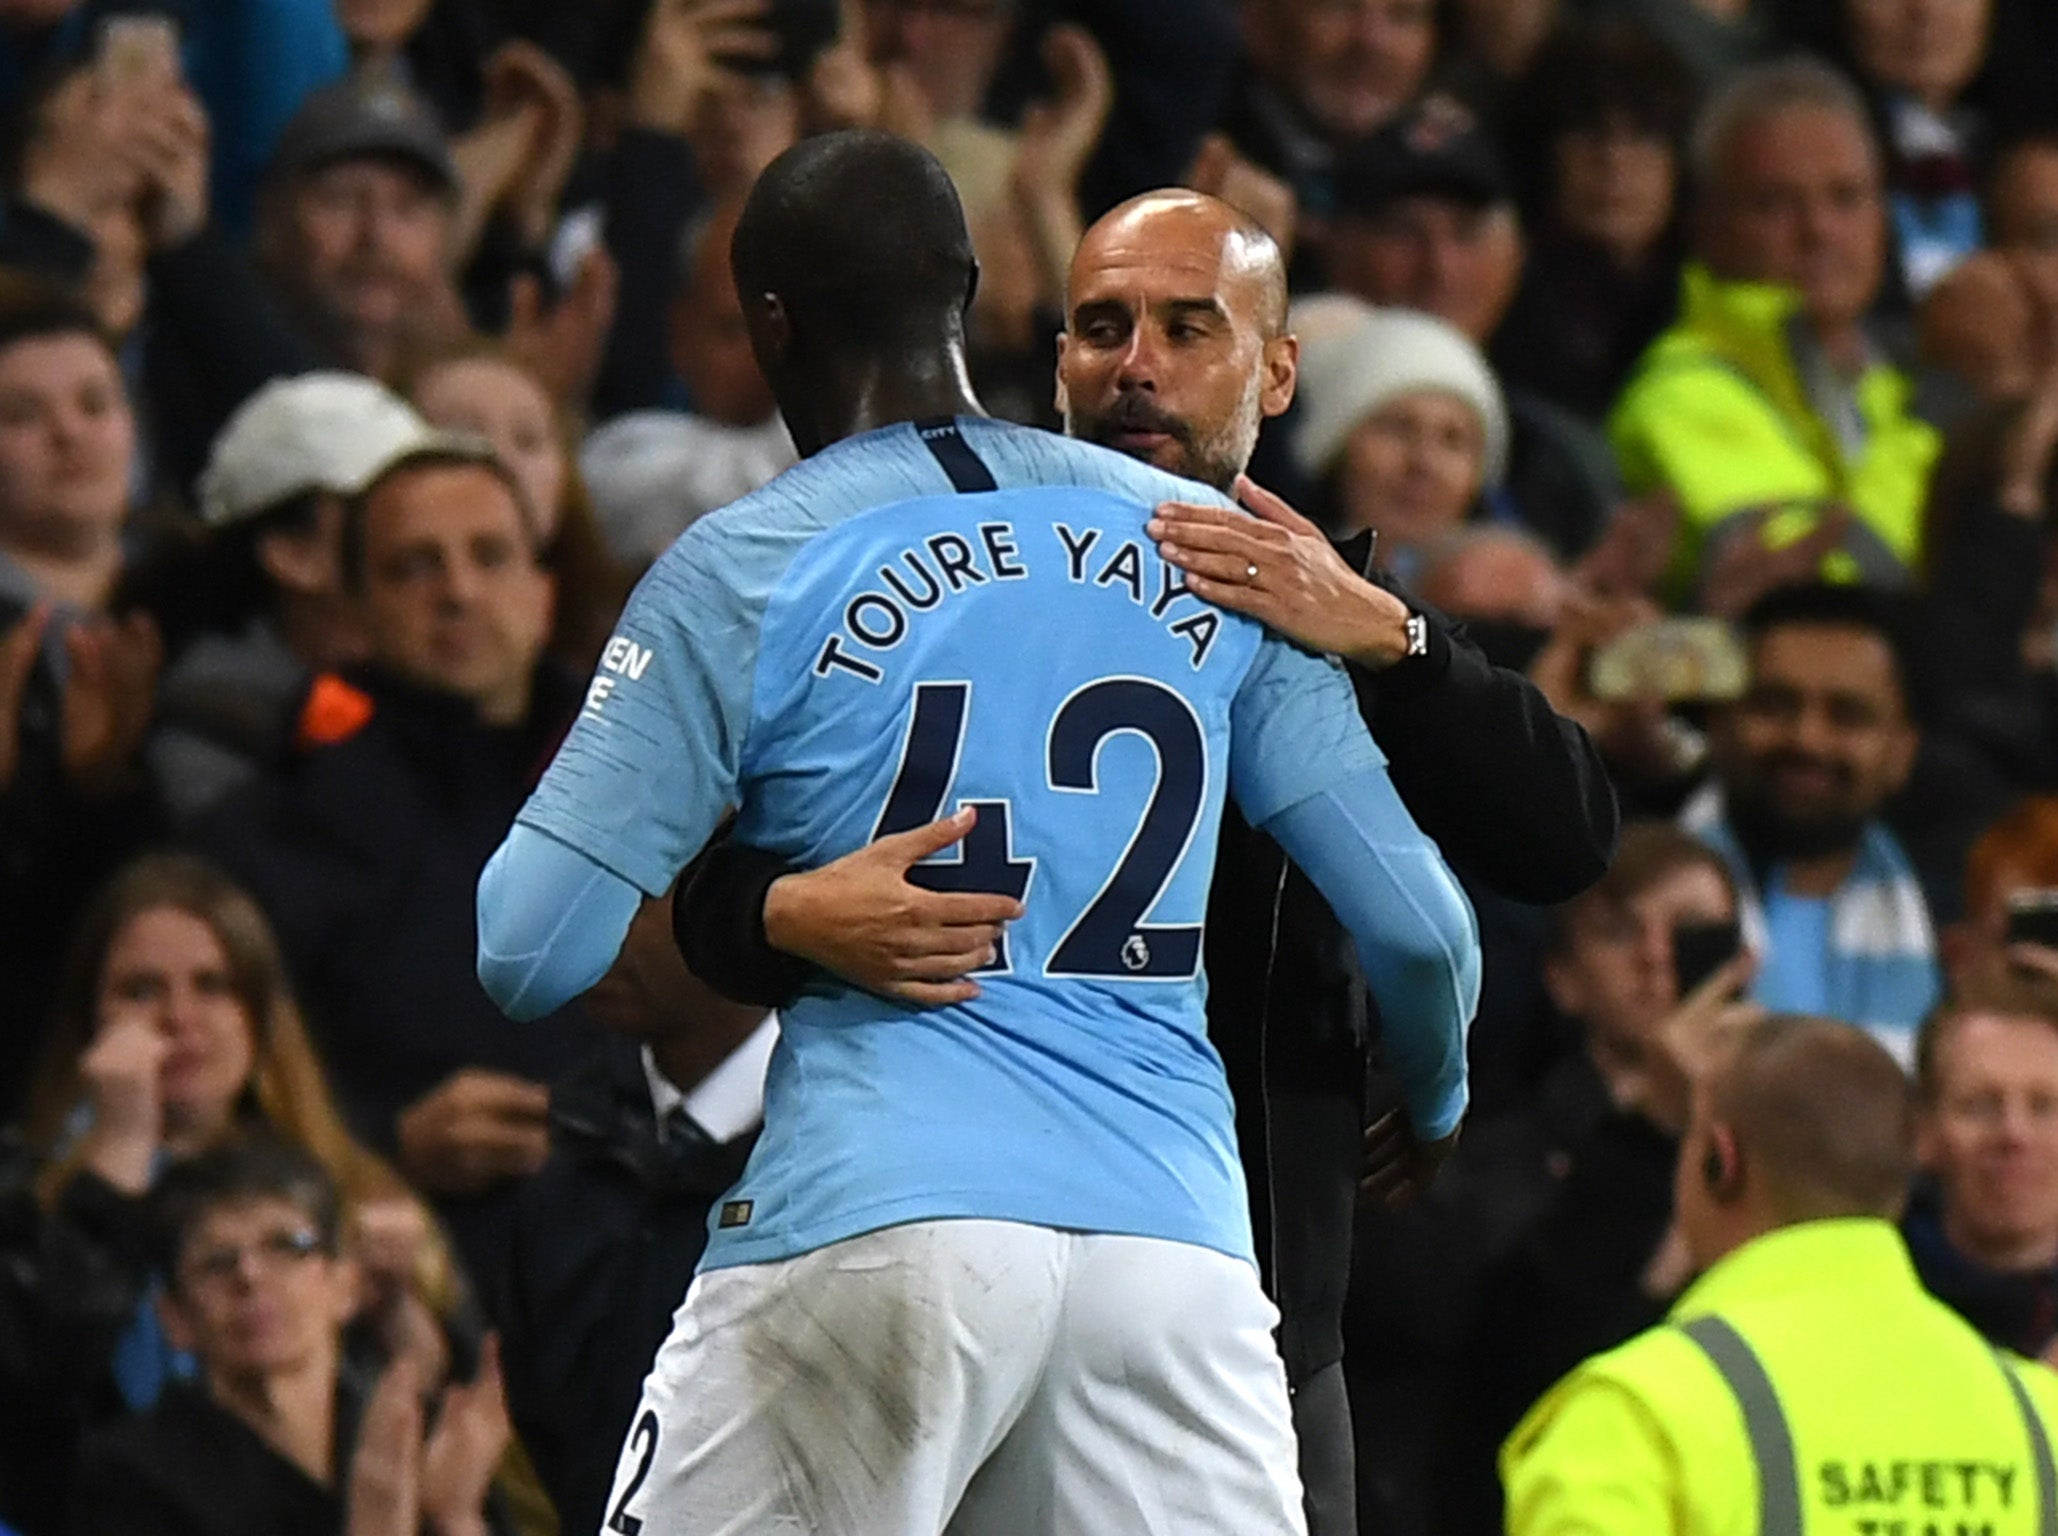 Pep Guardiola brands Yaya Toure's racism allegations against him as 'a lie and he knows it'